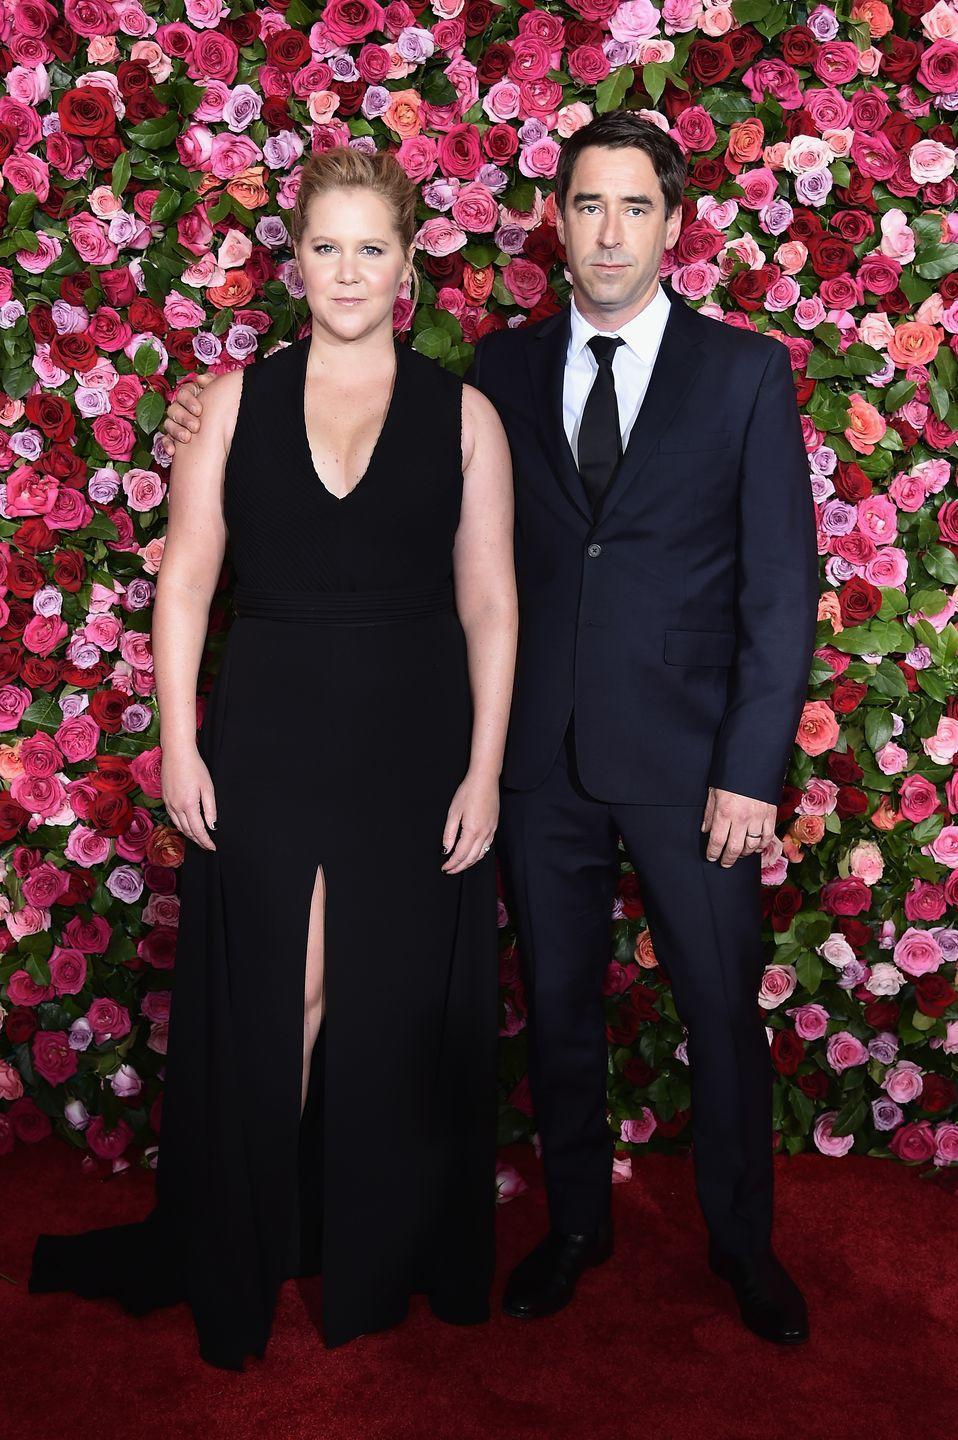 """<p>The comedian met Fischer through her assistant, Molly, who is <em>actually</em> Fischer's sister, so she's basically employee of the year. </p><p>Fischer is an award-winning chef who has served food for none other than the Obamas and Jake Gyllenhaal. <a href=""""https://abcnews.go.com/GMA/Culture/amy-schumer-reveals-met-husband-shares-details-secret/story?id=54391244"""" rel=""""nofollow noopener"""" target=""""_blank"""" data-ylk=""""slk:On one vacation to Martha's Vineyard,"""" class=""""link rapid-noclick-resp"""">On one vacation to Martha's Vineyard,</a> Molly suggested that her brother should pop on by Schumer's vacation house to cook for her, and the rest is history.</p>"""